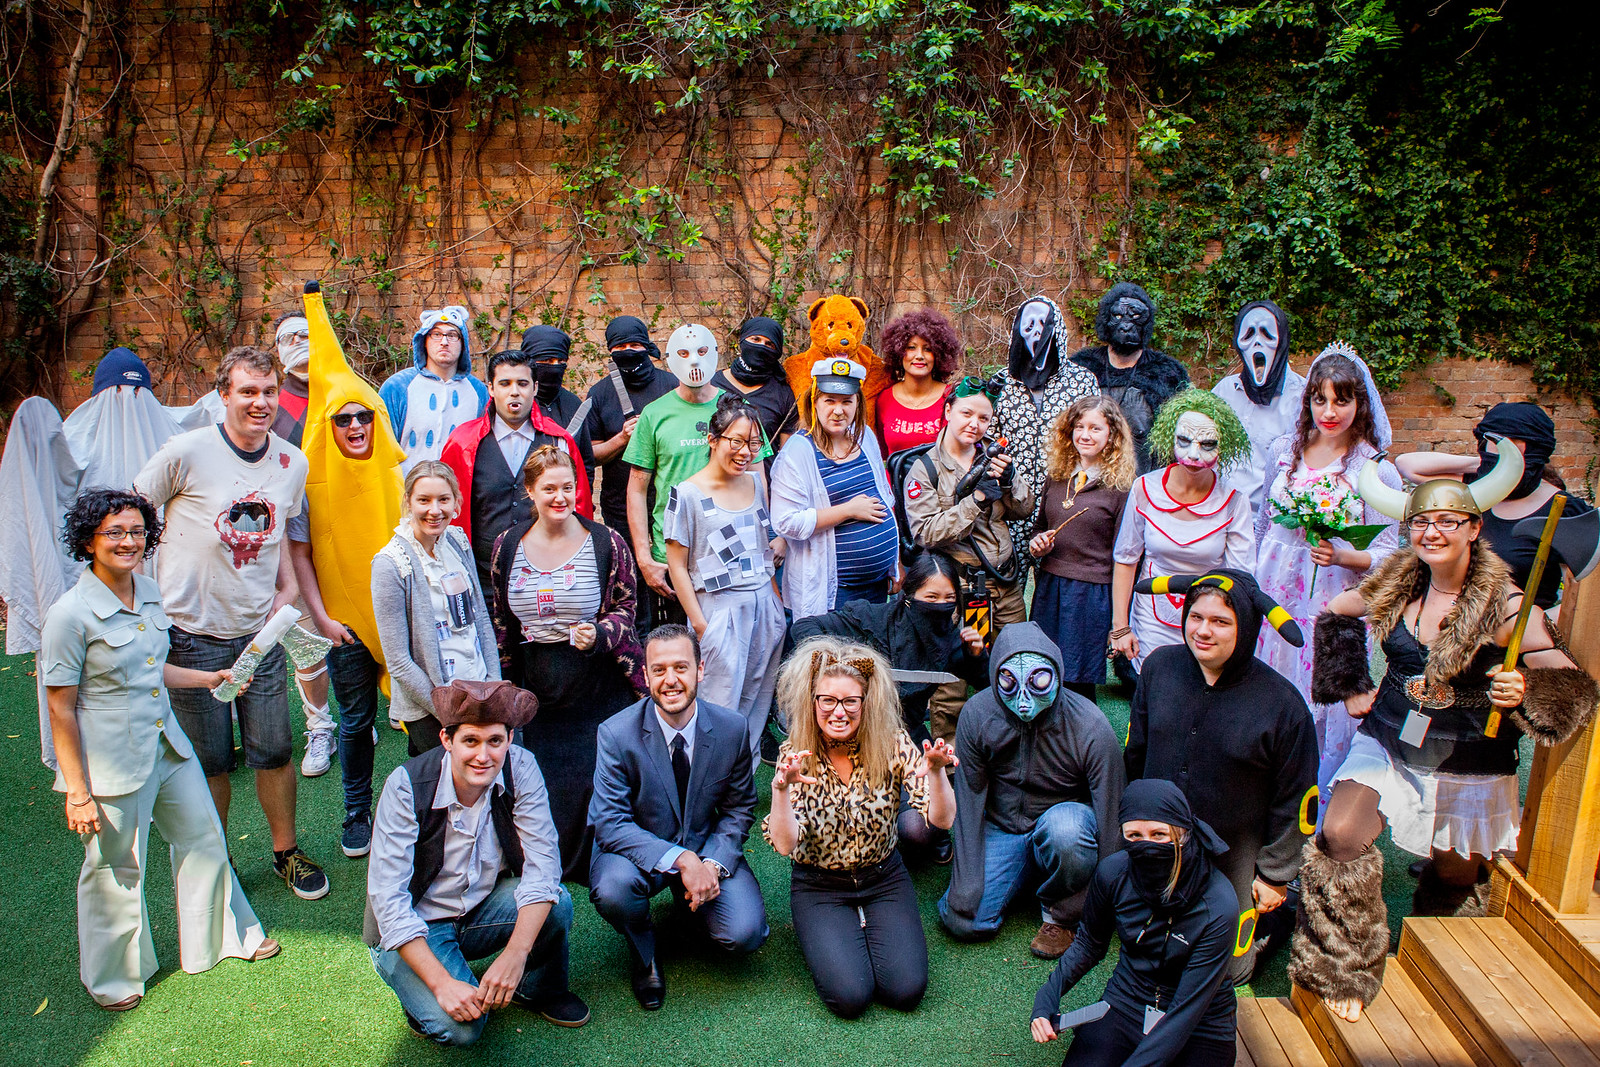 celebrating halloween at envato a photo essay